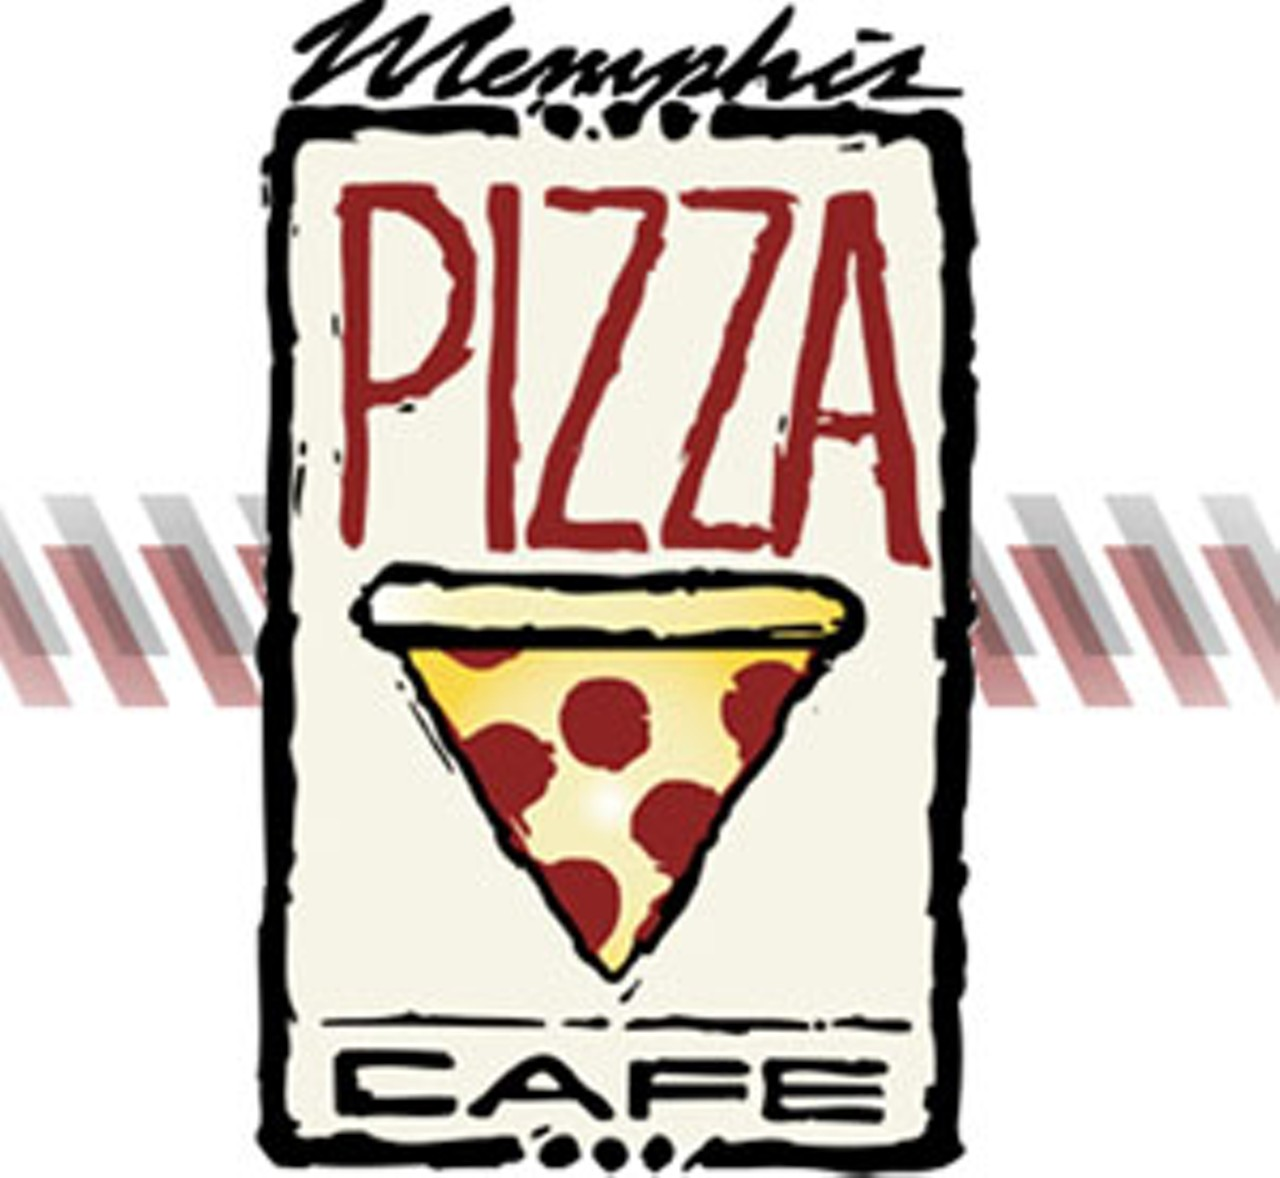 Memphis Pizza Cafe Menu